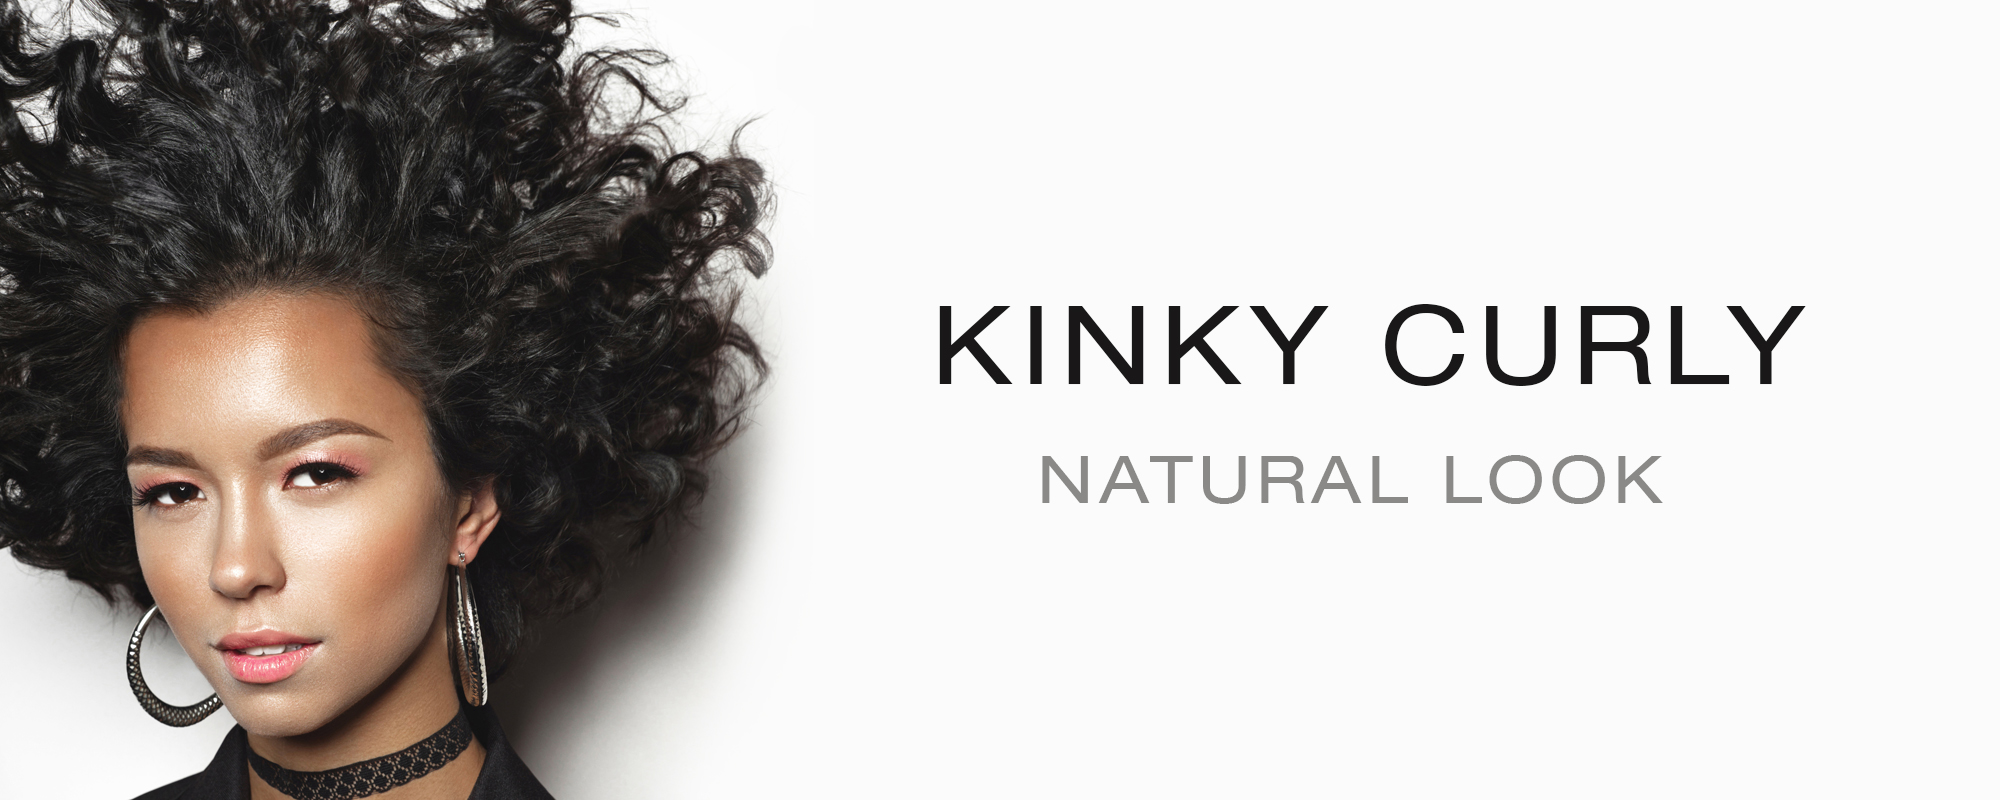 image-of-woman-with-curly-hair